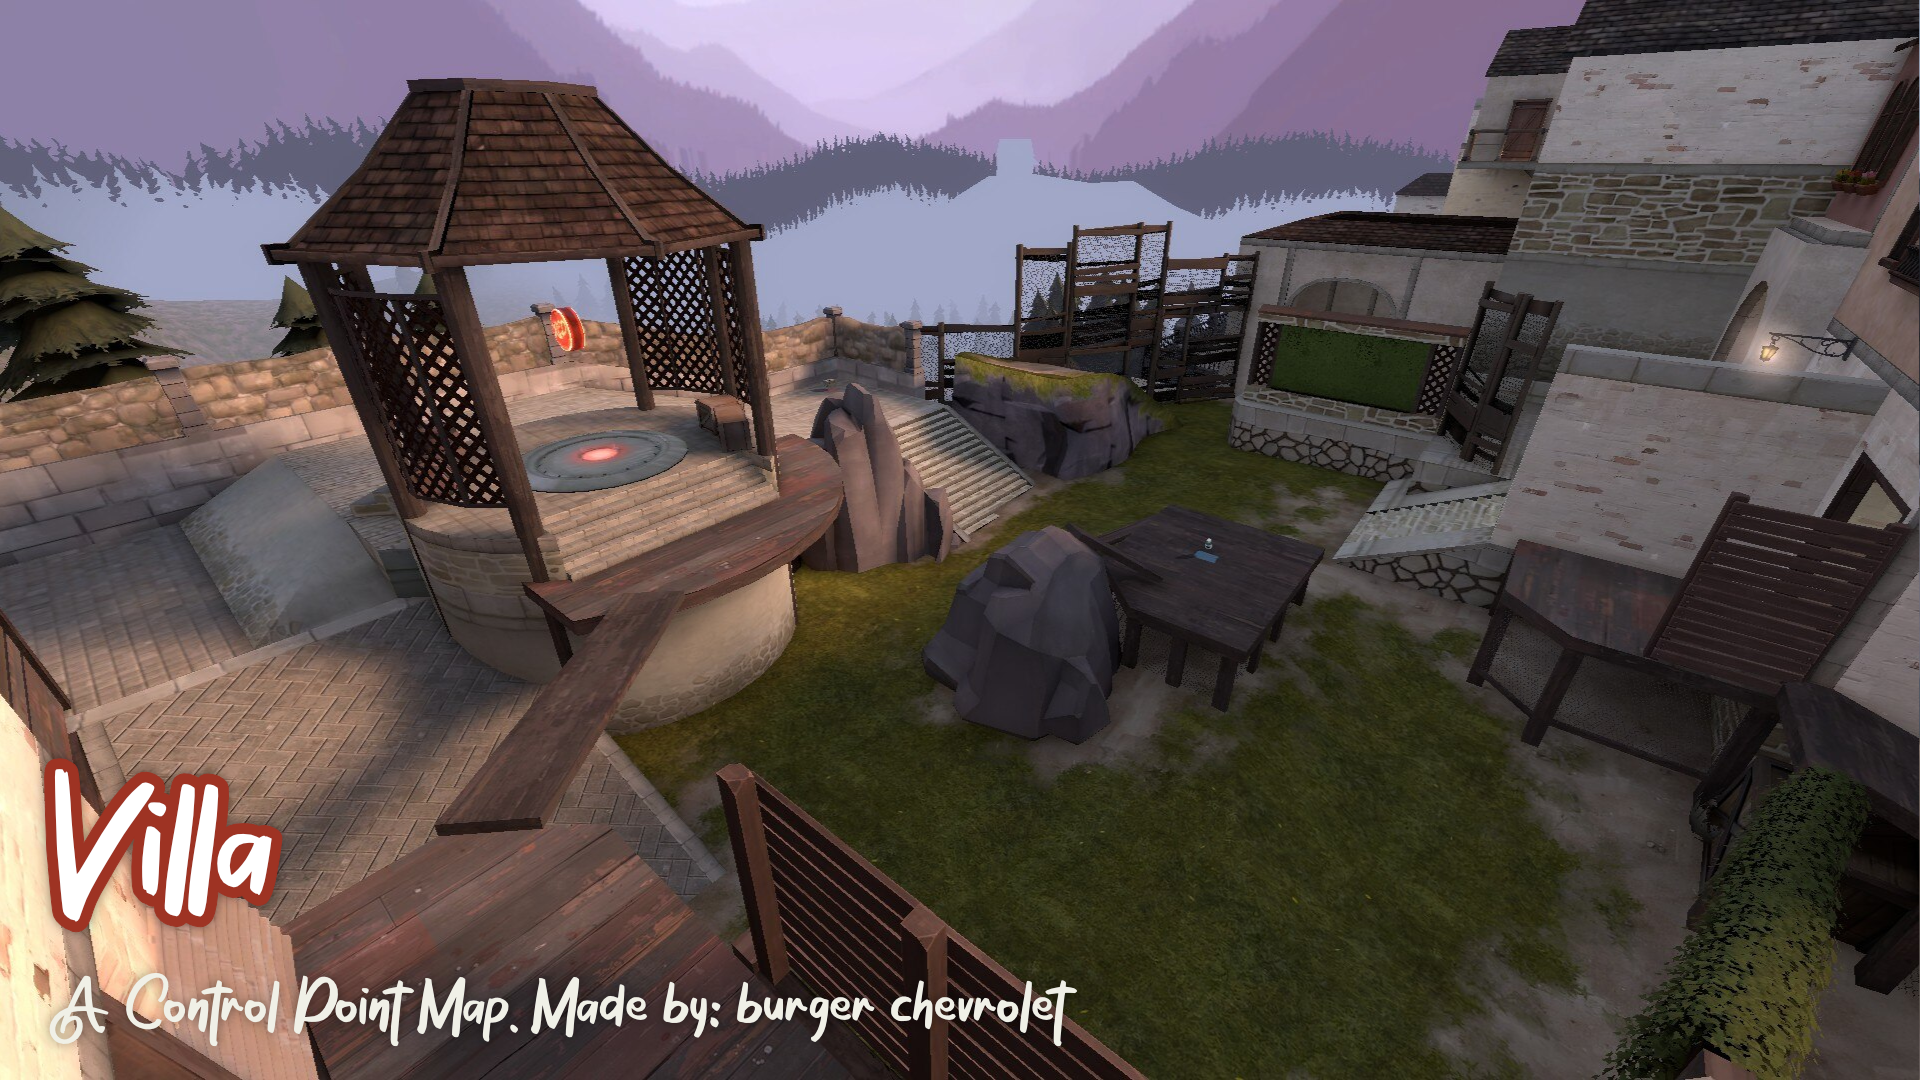 Villa. A Control Point Map. Made by: burger chevrolet